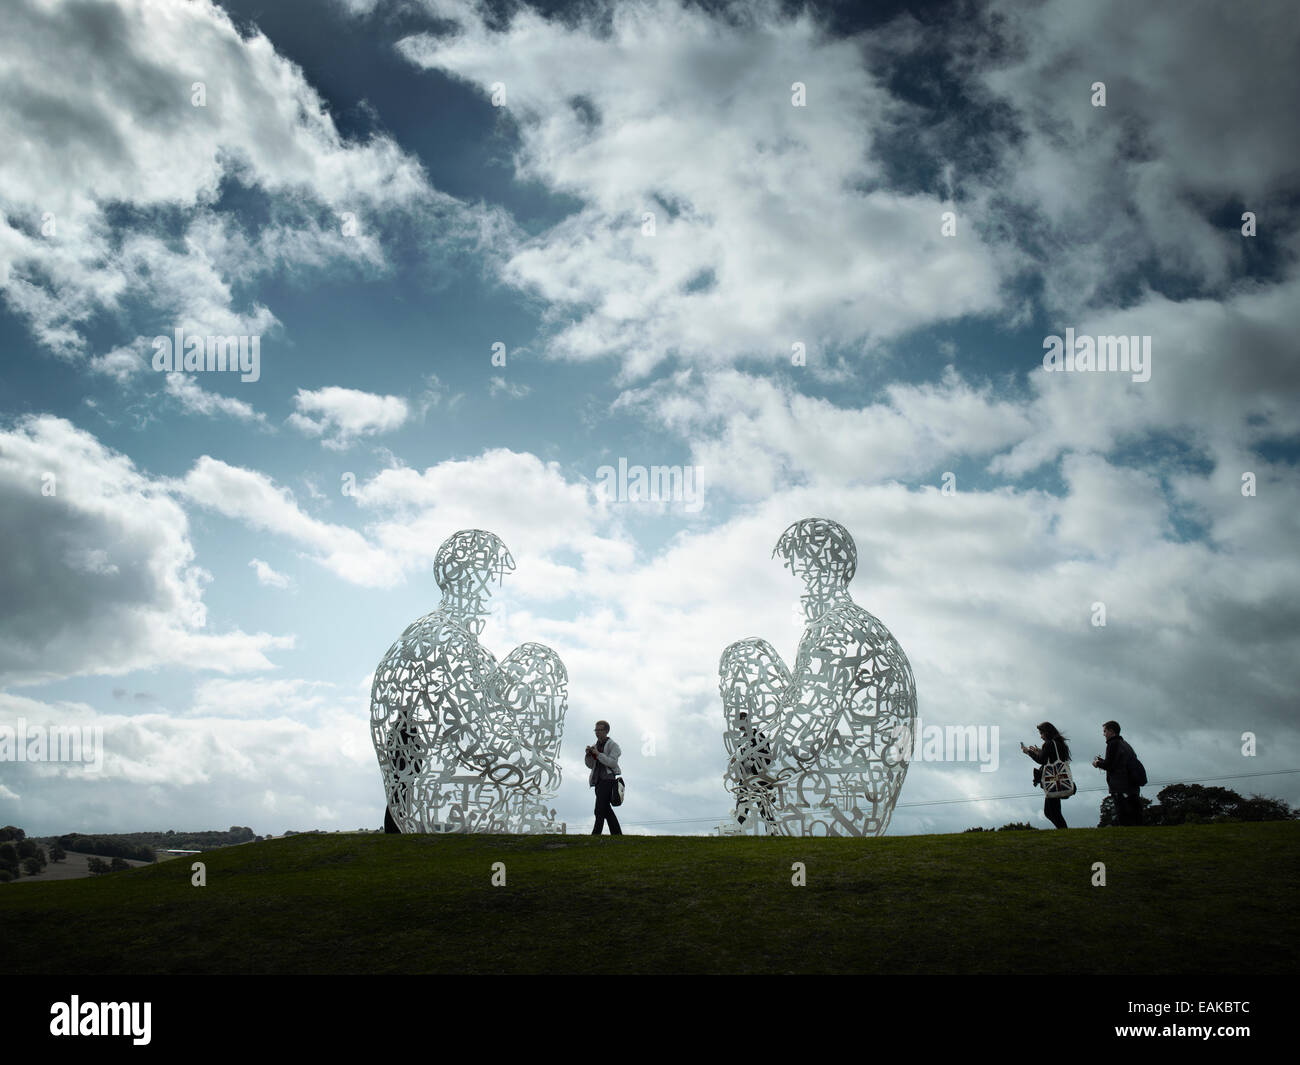 Jaume Plensa sculpture at Yorkshire sculpture Park Wakefield from a large scale exhibition of his work. - Stock Image